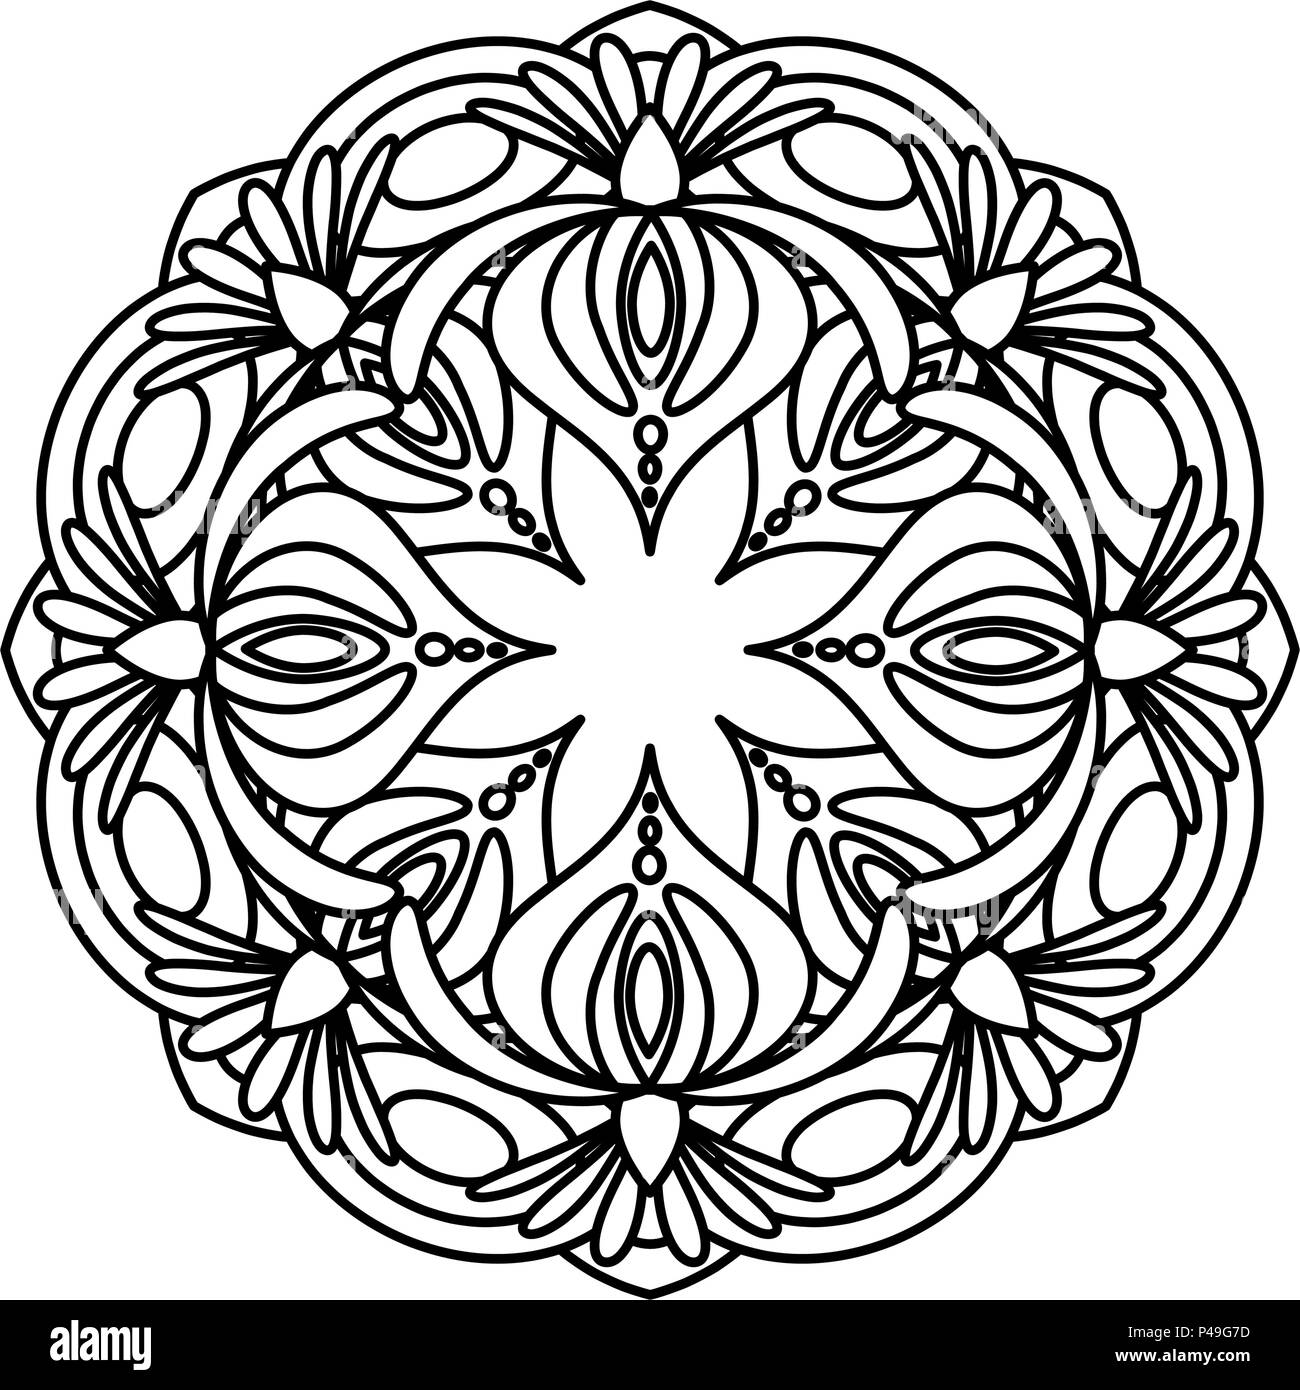 Flower Mandala Vector Illustration Adult Coloring Page Circular Abstract Floral Oriental Pattern Vintage Decorative Elements